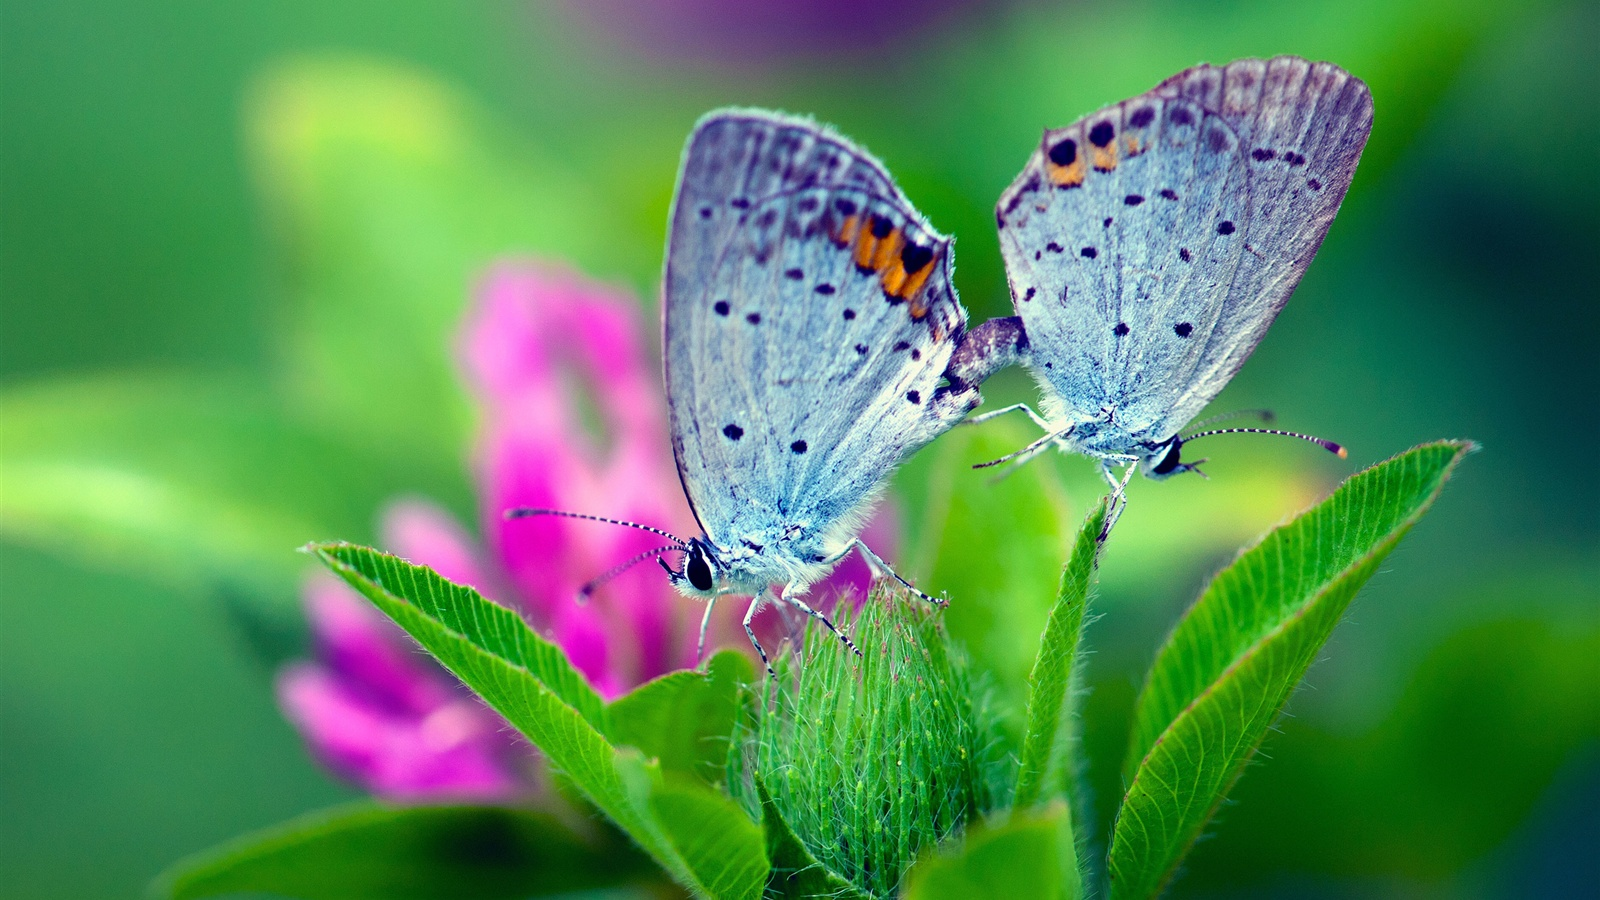 Wallpaper Spring Nature Butterfly Green Leaves Flower 2560x1600